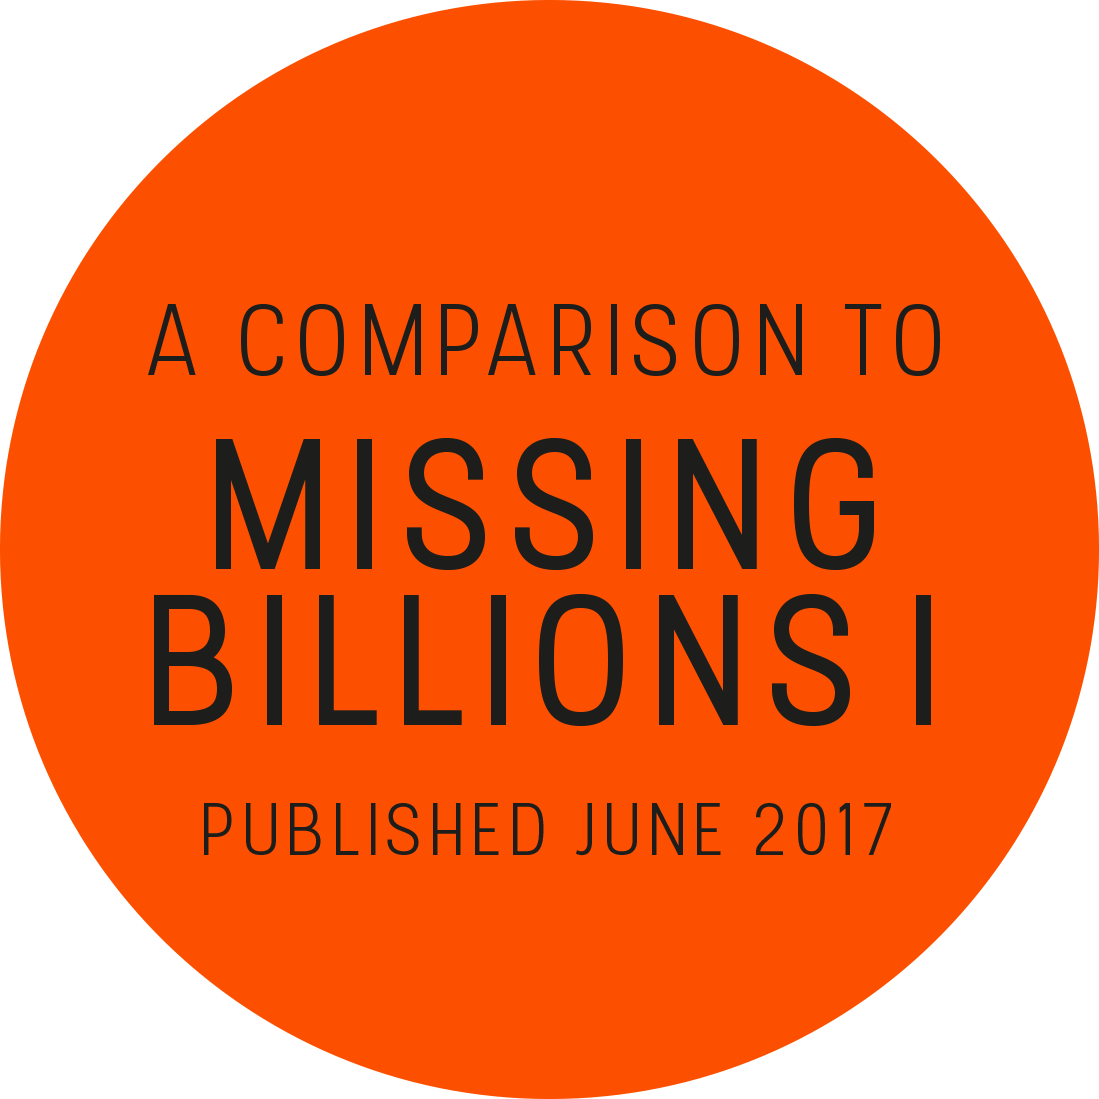 A comparison to Missing Billions I